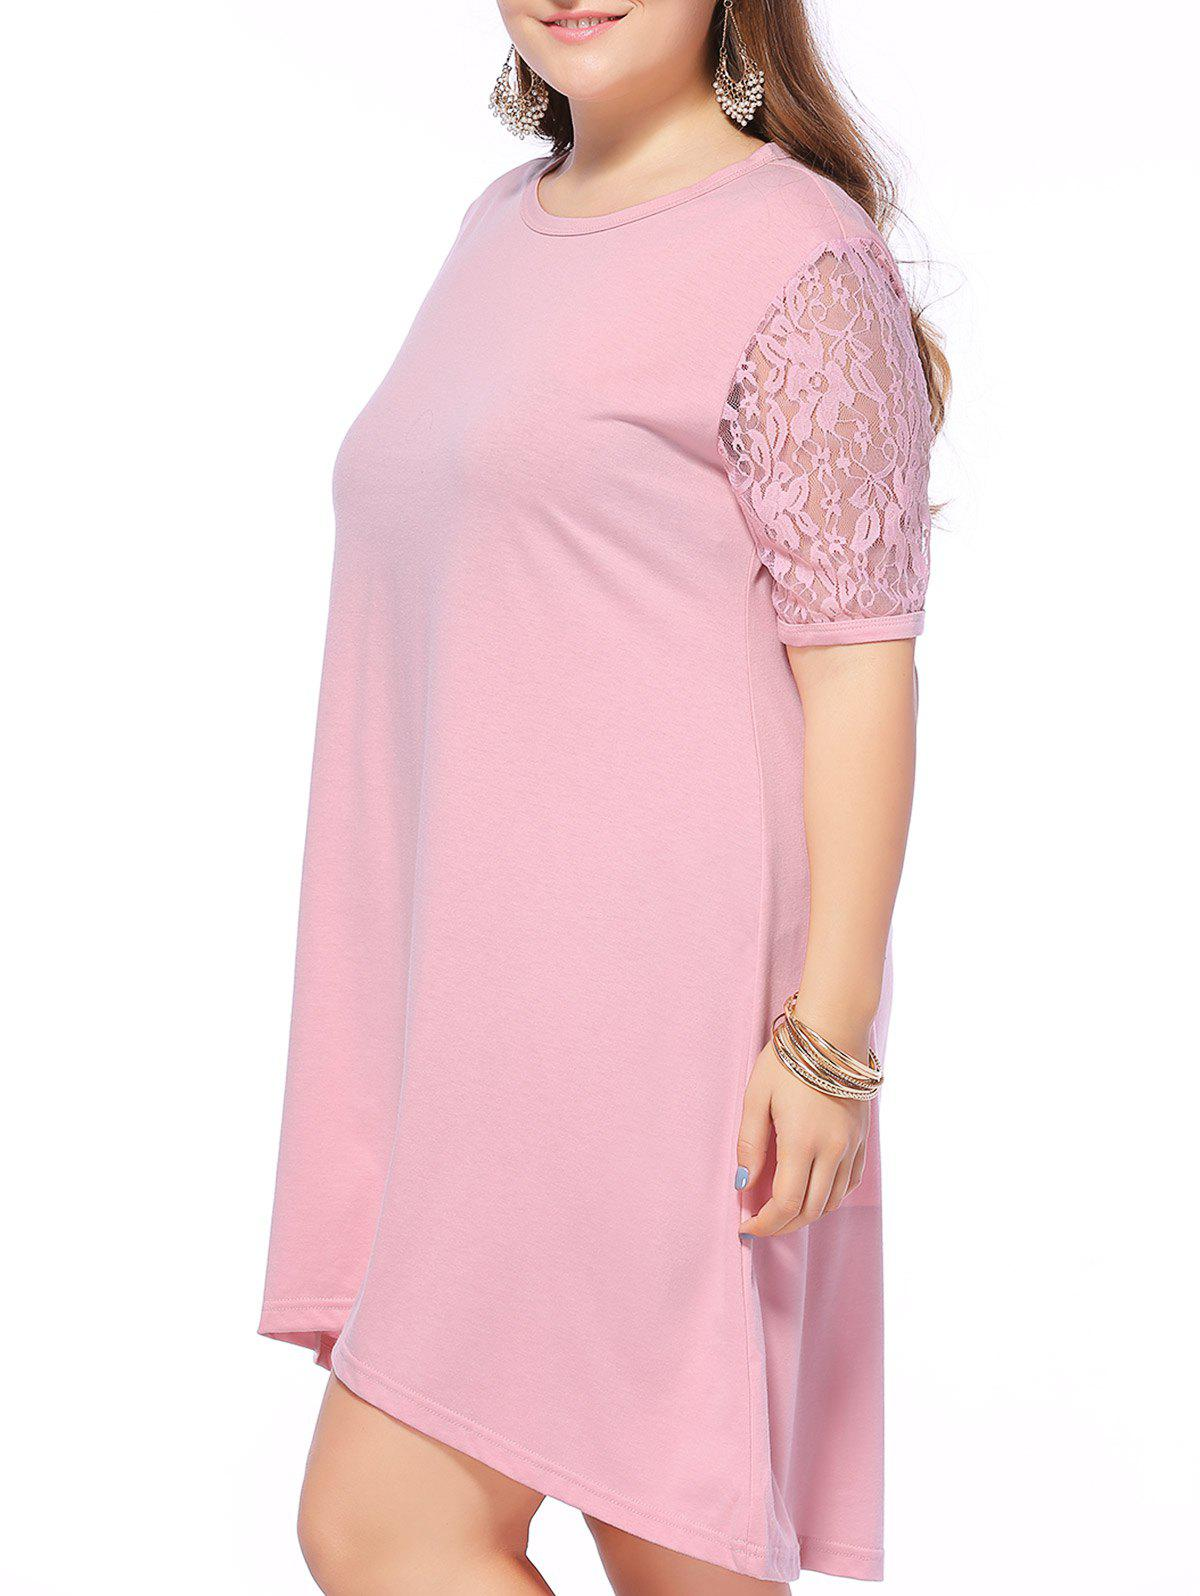 Alluring Plus Size Lace Spliced High Low Dress - PINK 6XL